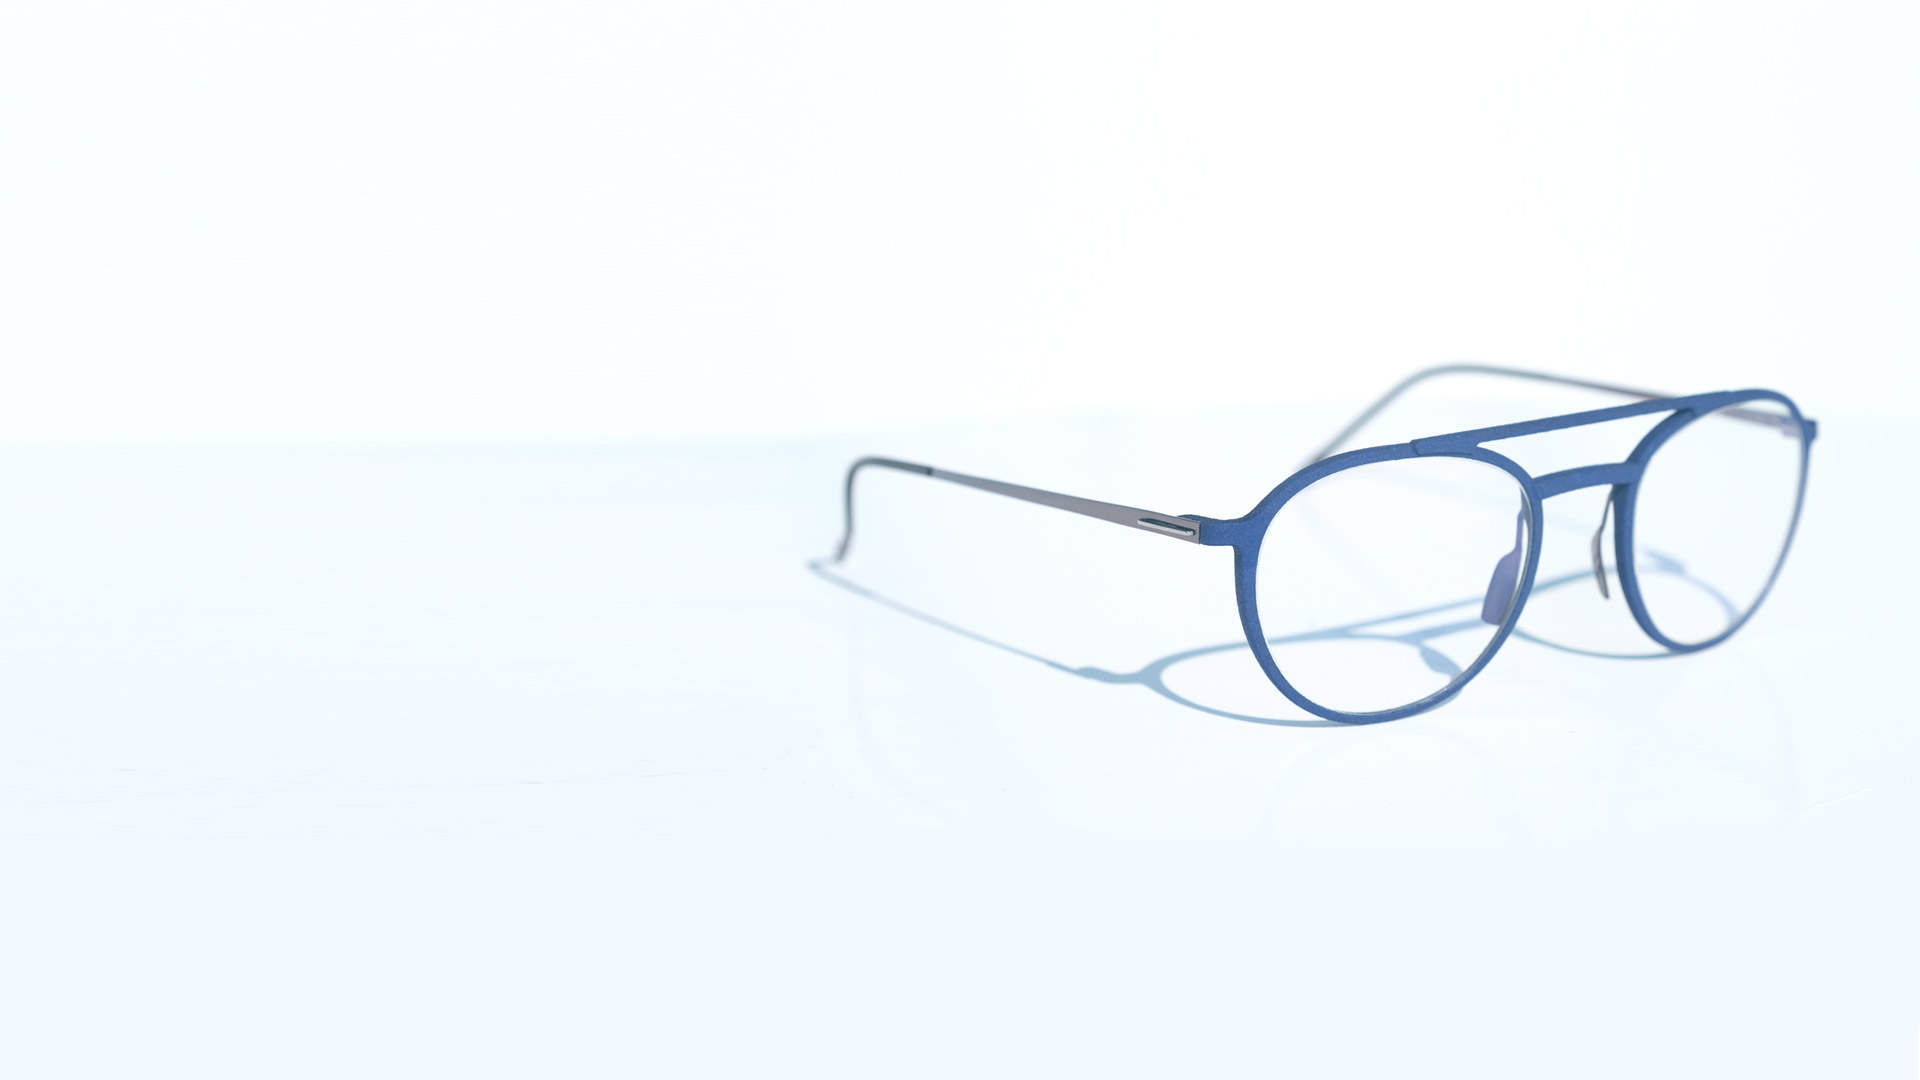 6d5e4f64a04d Lightec 3D. Minimalist, light and innovative Discover the brand new 3D  printed eyeglasses by MOREL